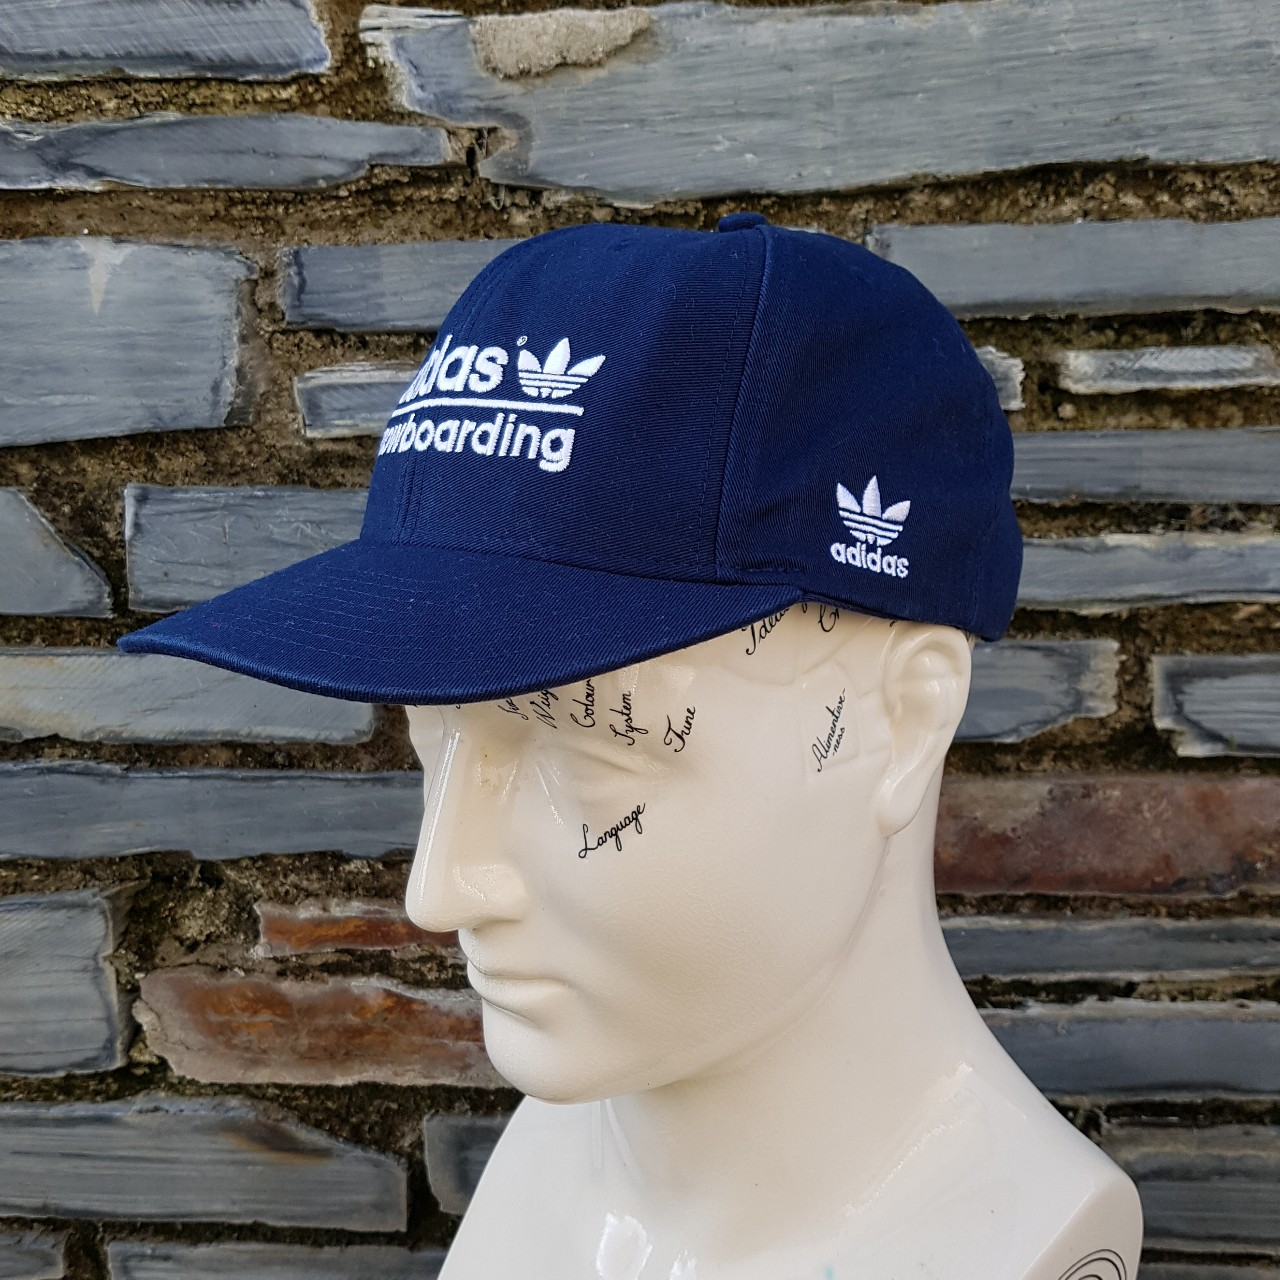 7ace9065565 @st_vintageclobber. in 38 minutes. United Kingdom, GB. Adidas Snowboarding  Cap. One size fits all ...